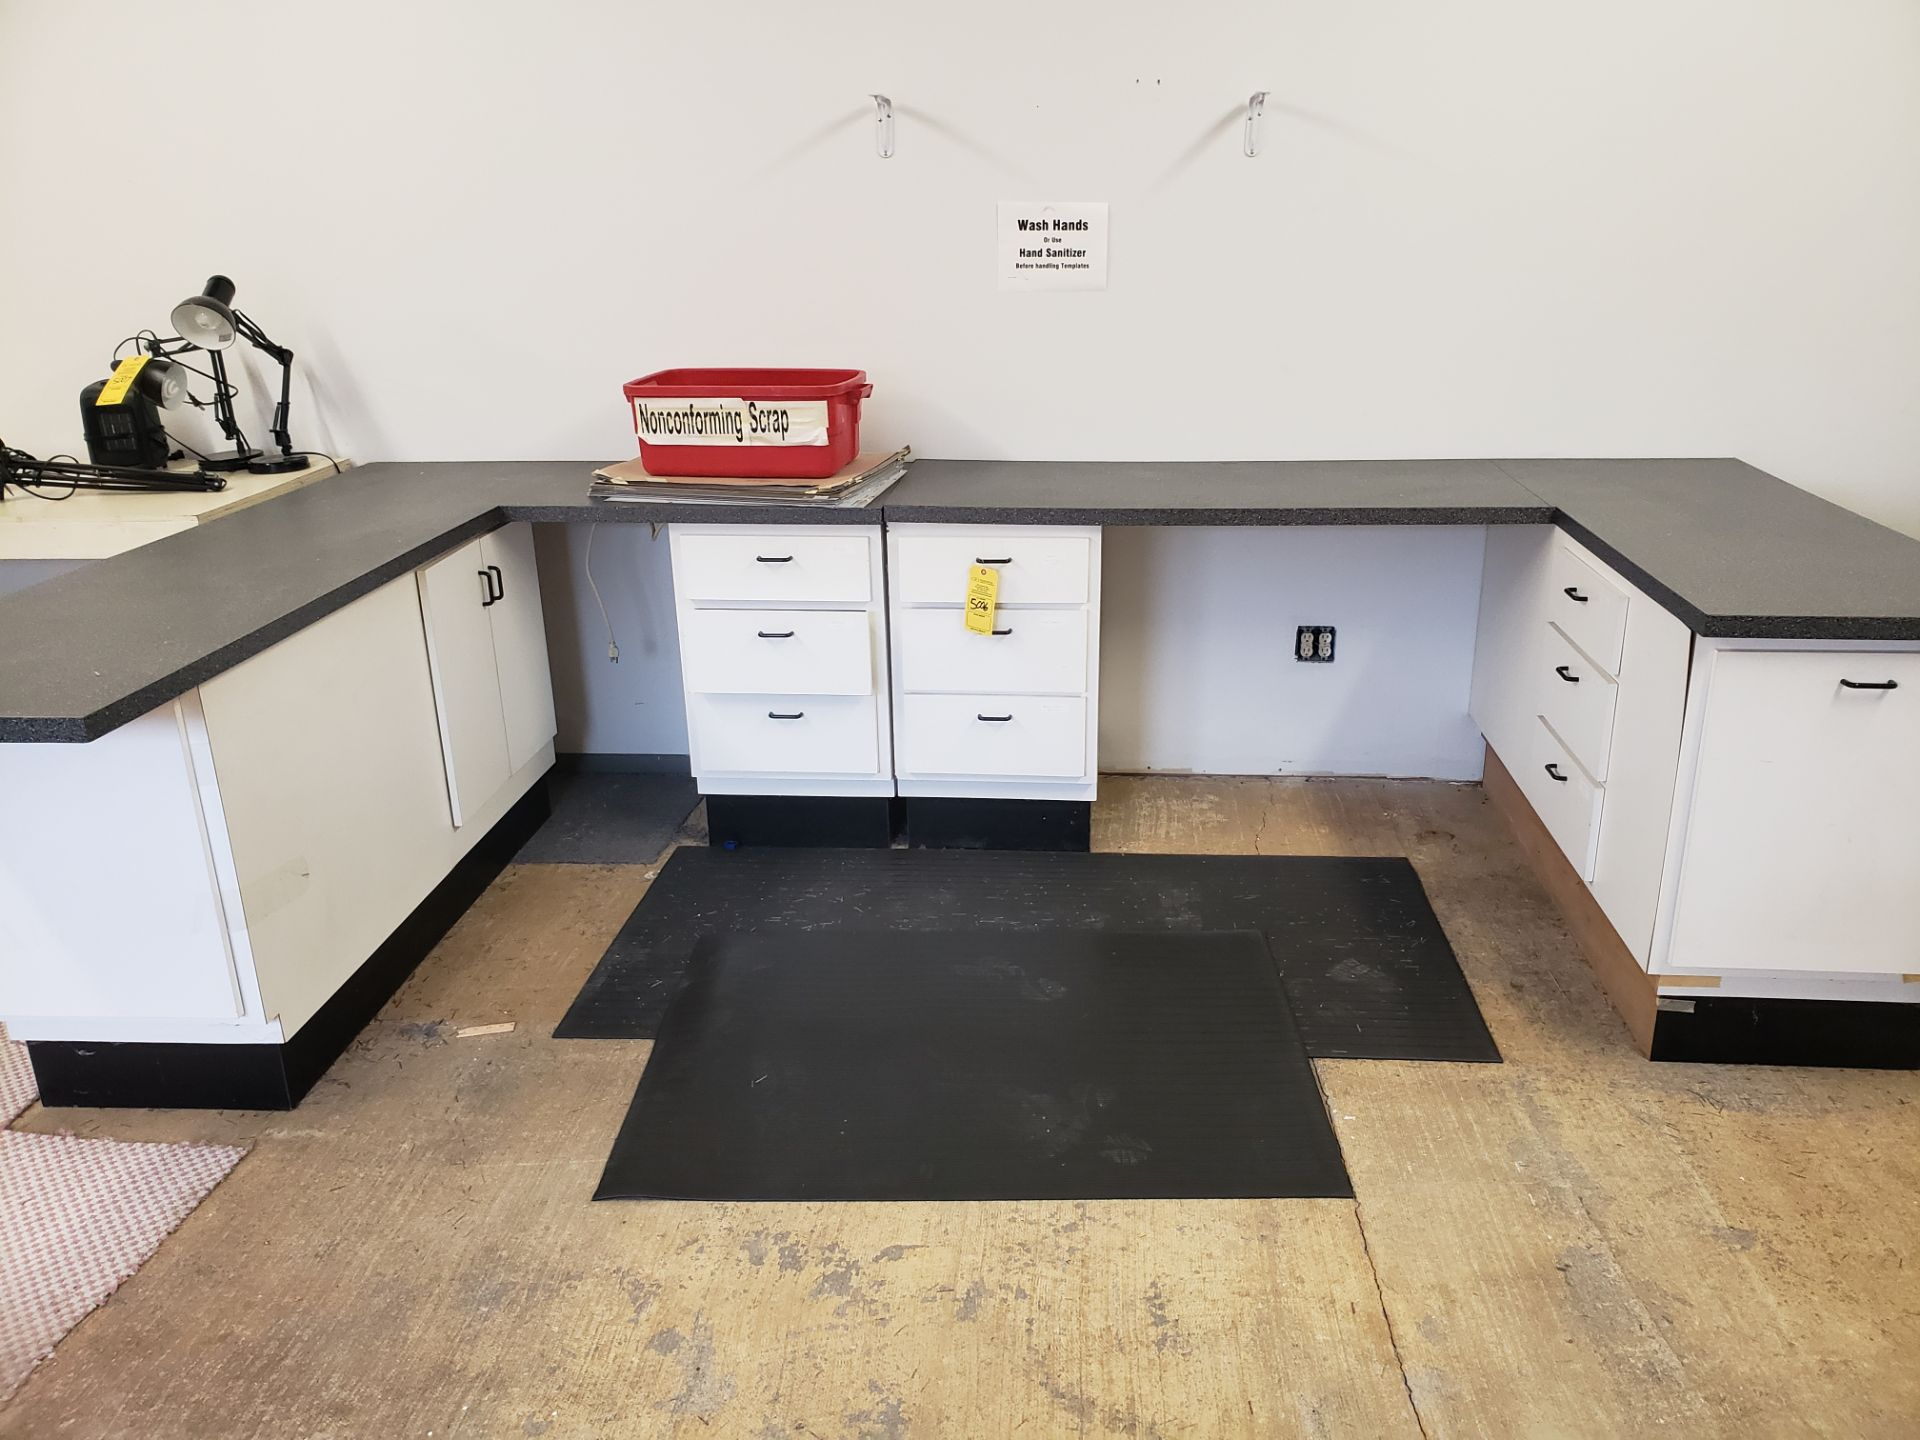 Lot 5006 - CABINETS (LOCATED AT: 16335 LIMA ROAD BLDG. 4 HUNTERTOWN, IN 46748)